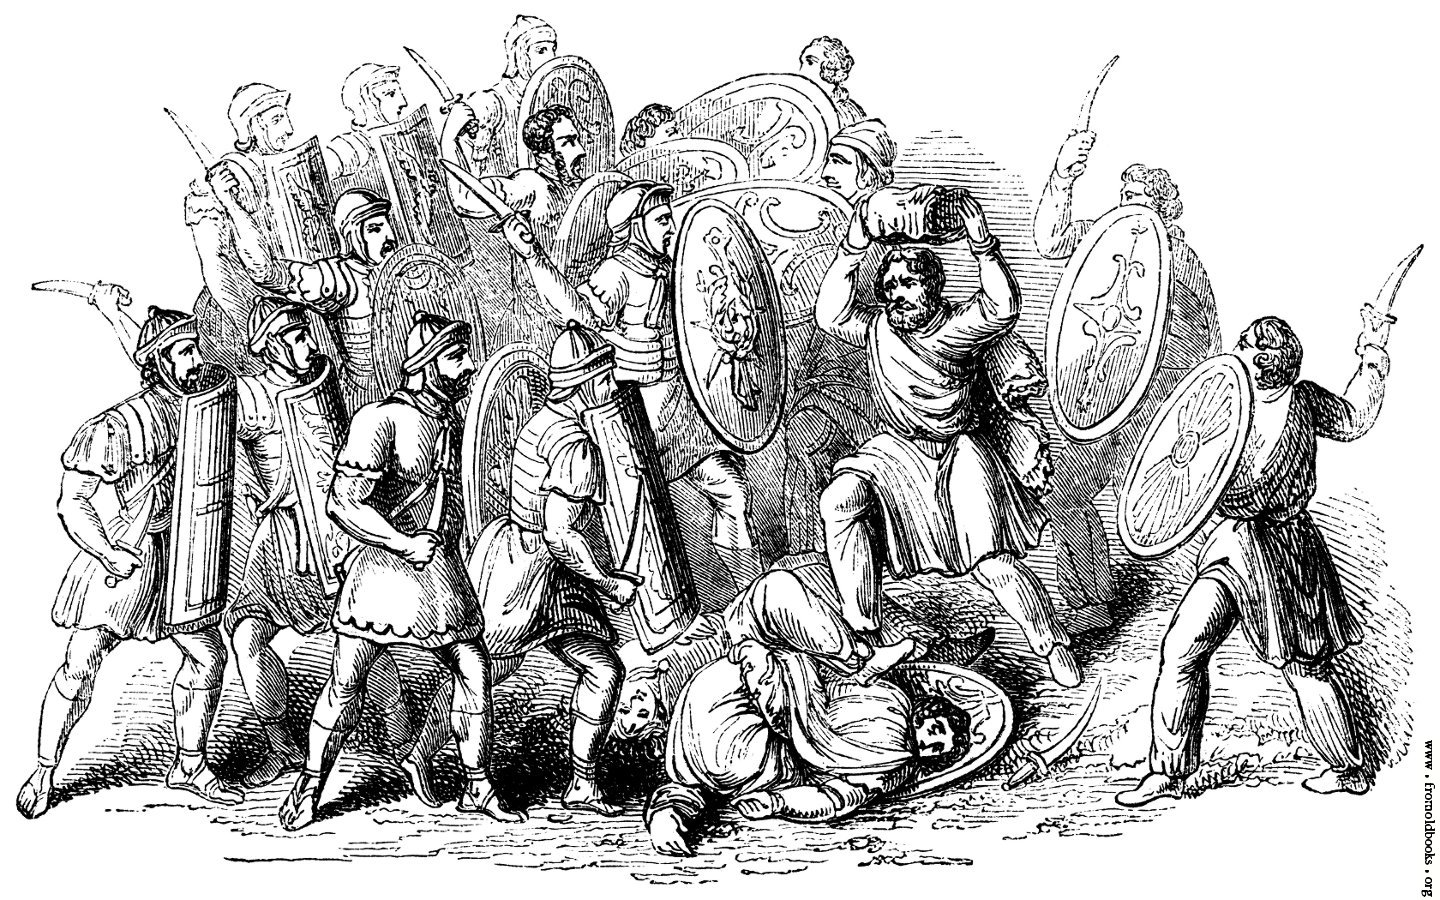 0114-Conflict-between-Romans-and-Barbarians-q90-1440x900.jpg